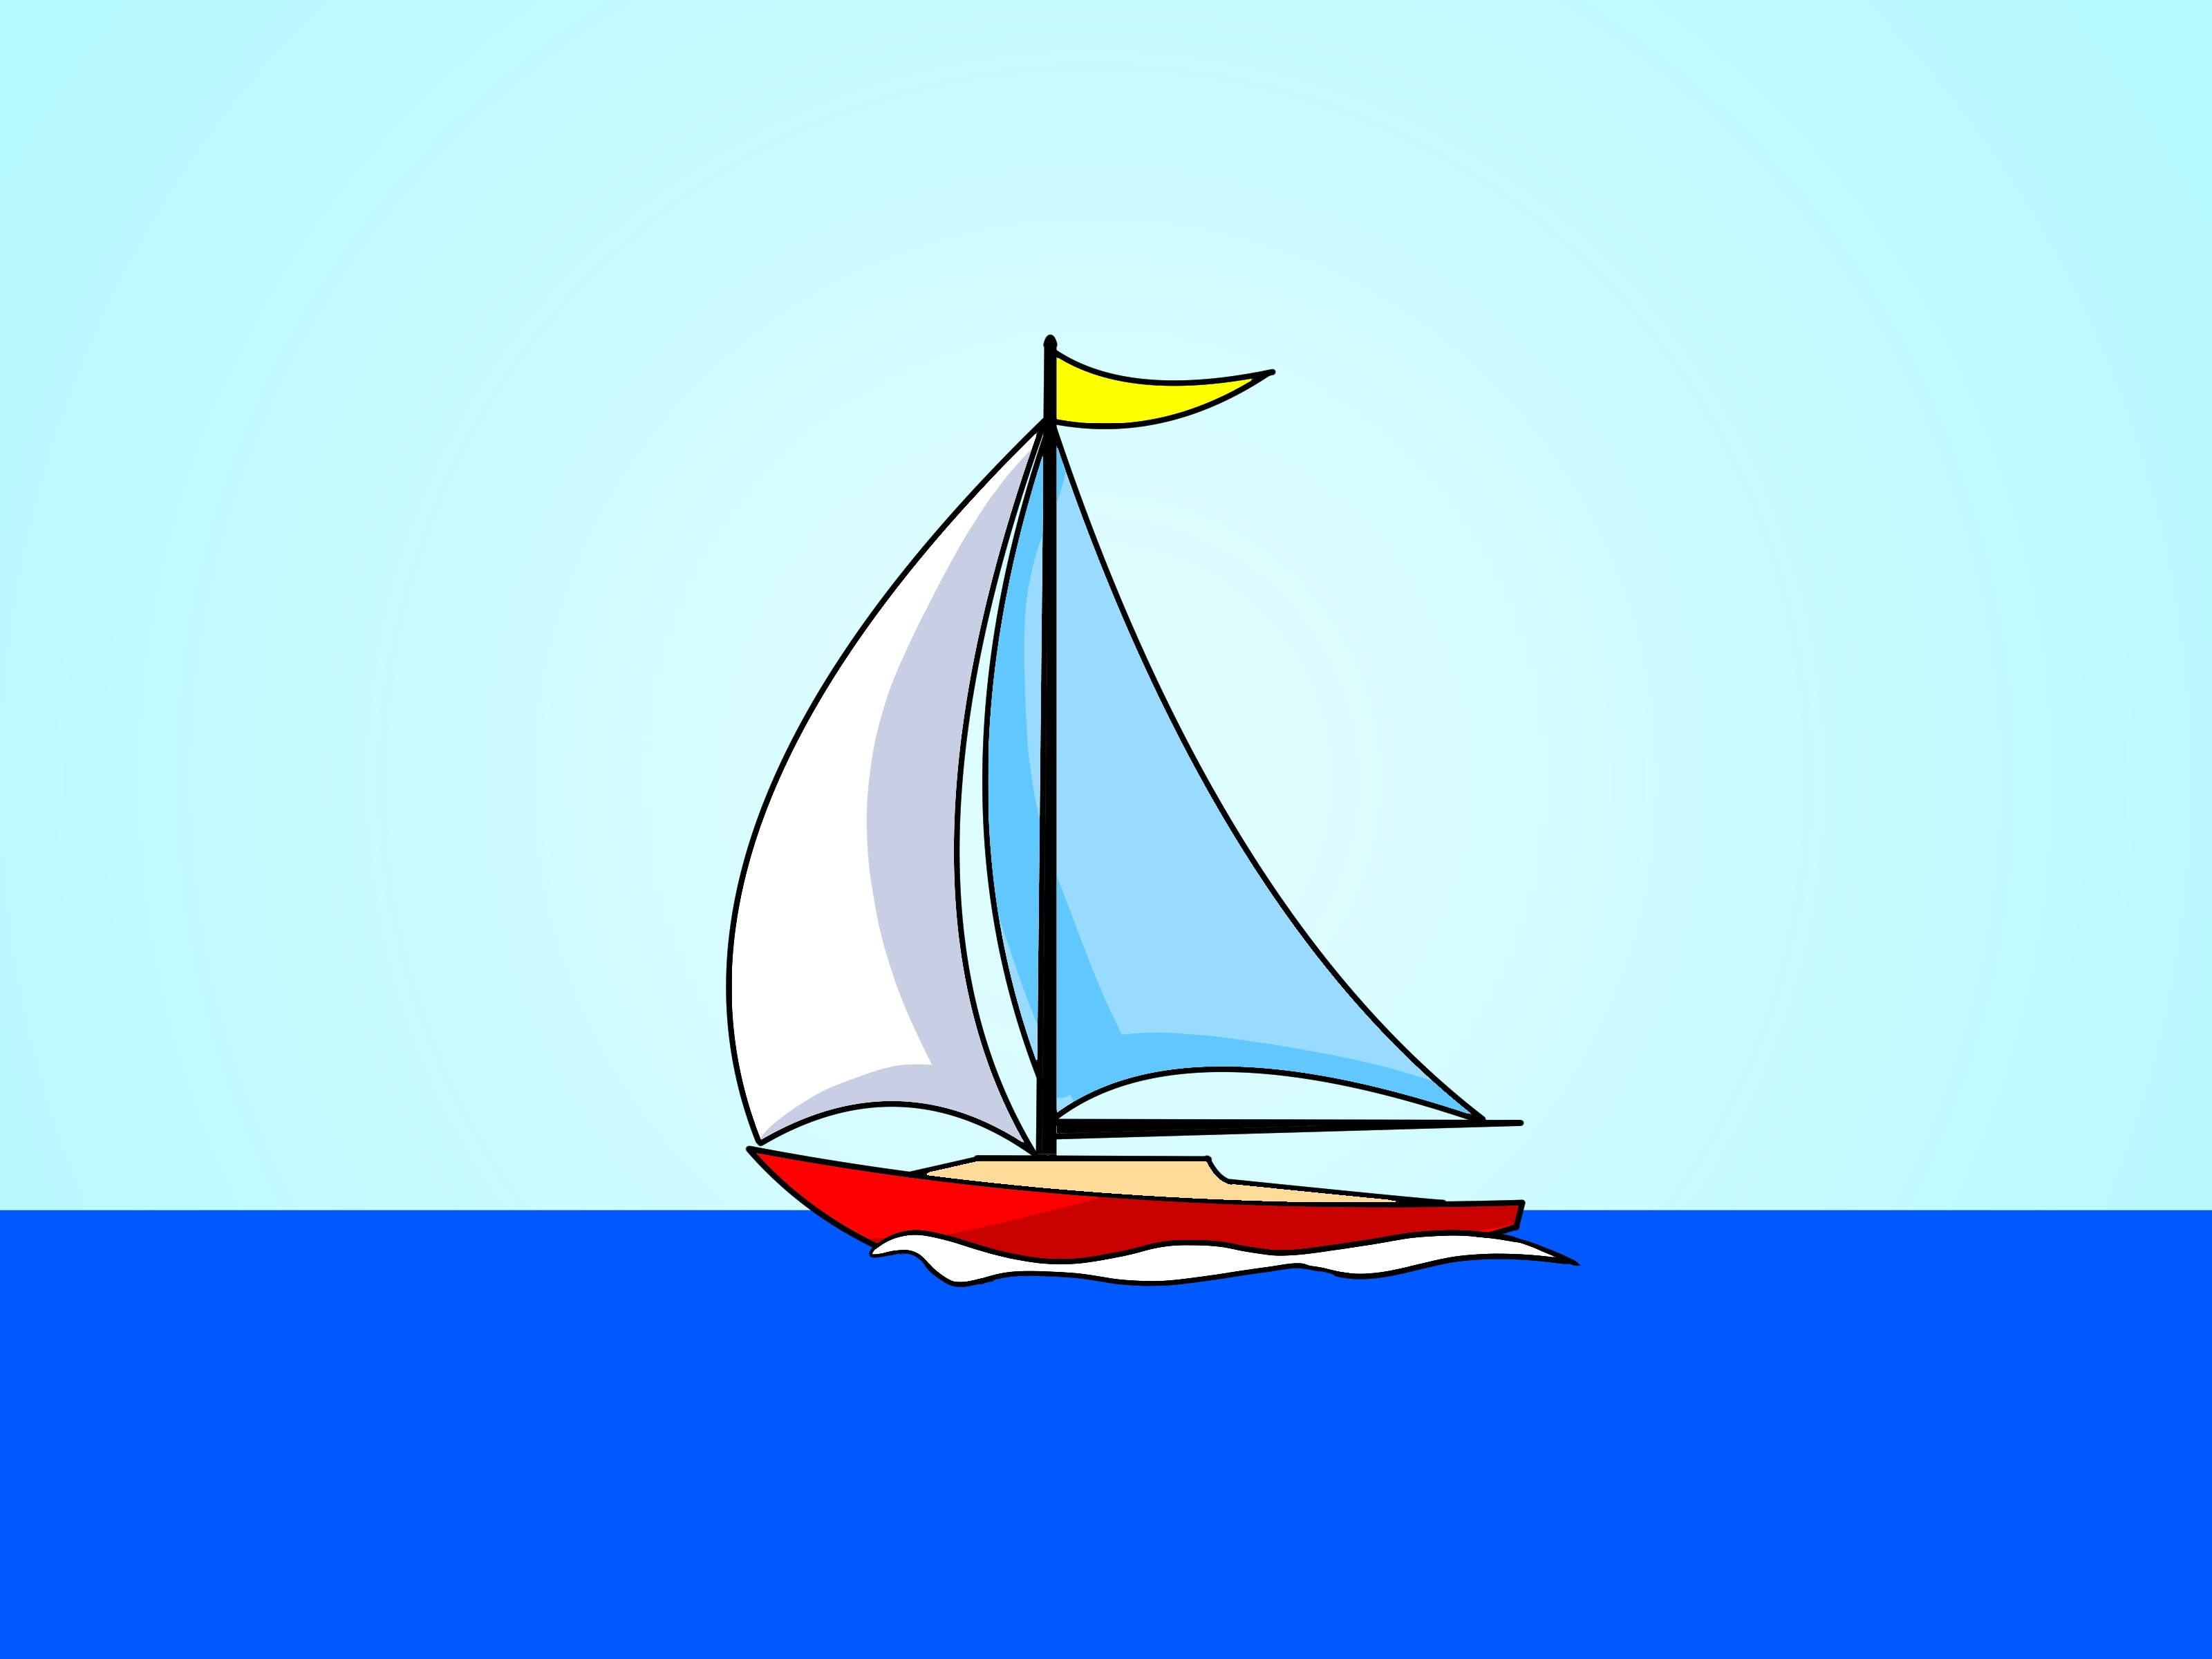 Sail Boat Drawings - ClipArt Best